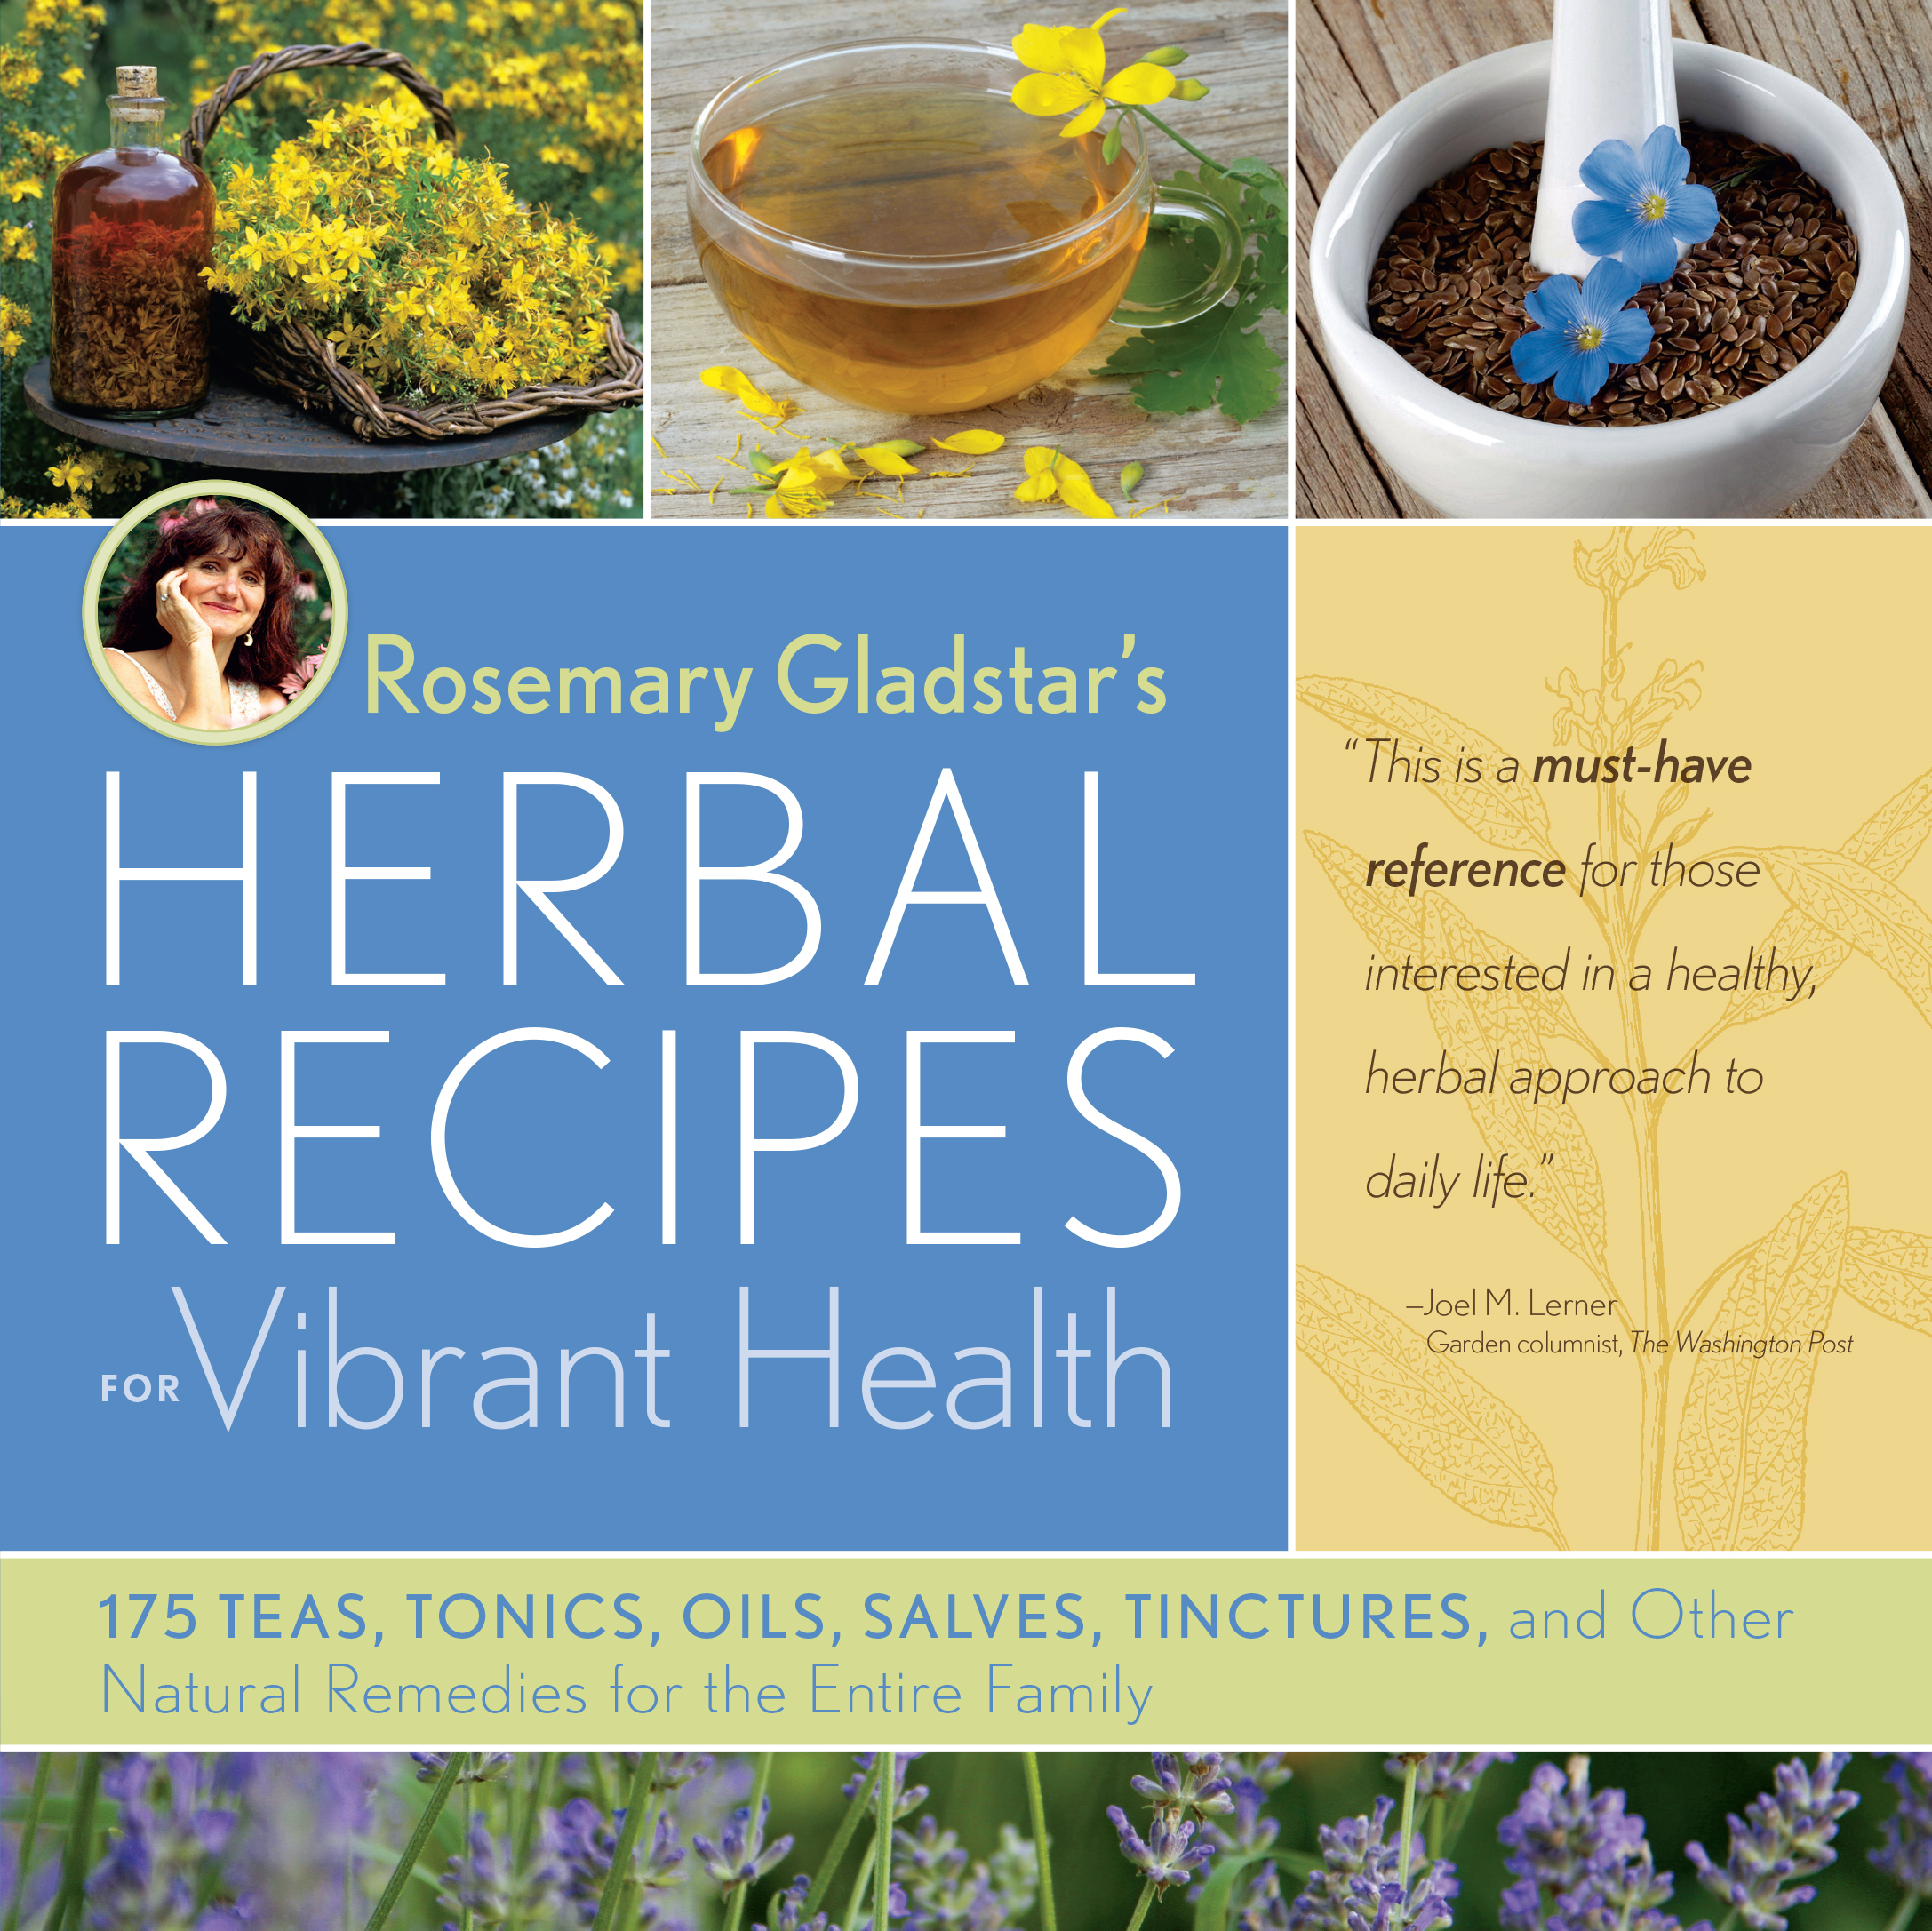 Rosemary Gladstar's Herbal Recipes for Vibrant Health 175 Teas, Tonics, Oils, Salves, Tinctures, and Other Natural Remedies for the Entire Family - Rosemary Gladstar